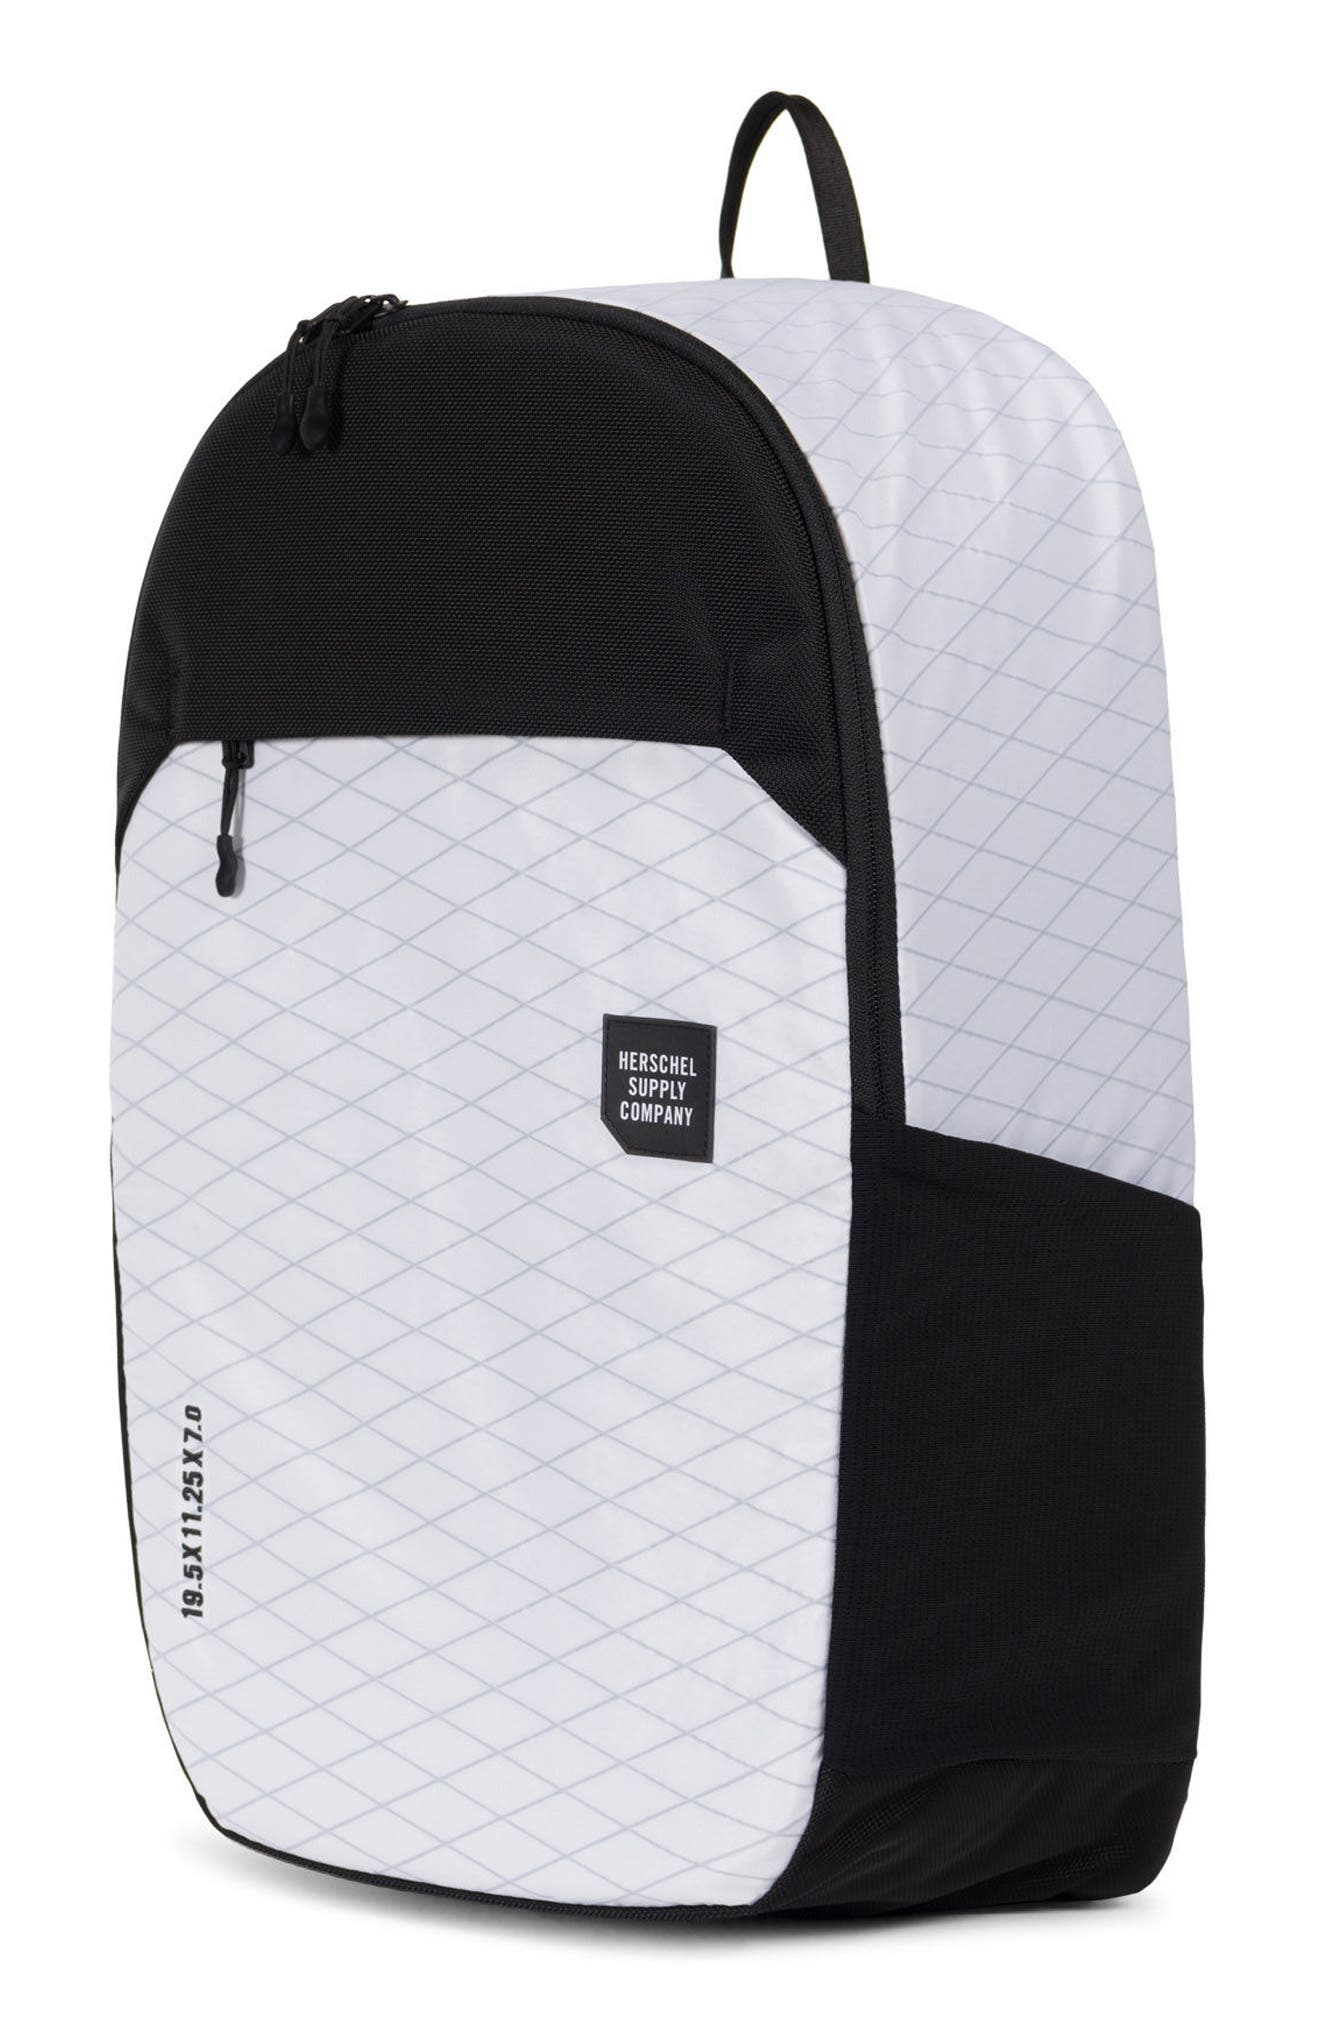 Trail Sailcloth Mammoth Large Backpack,                             Alternate thumbnail 5, color,                             White/ Black